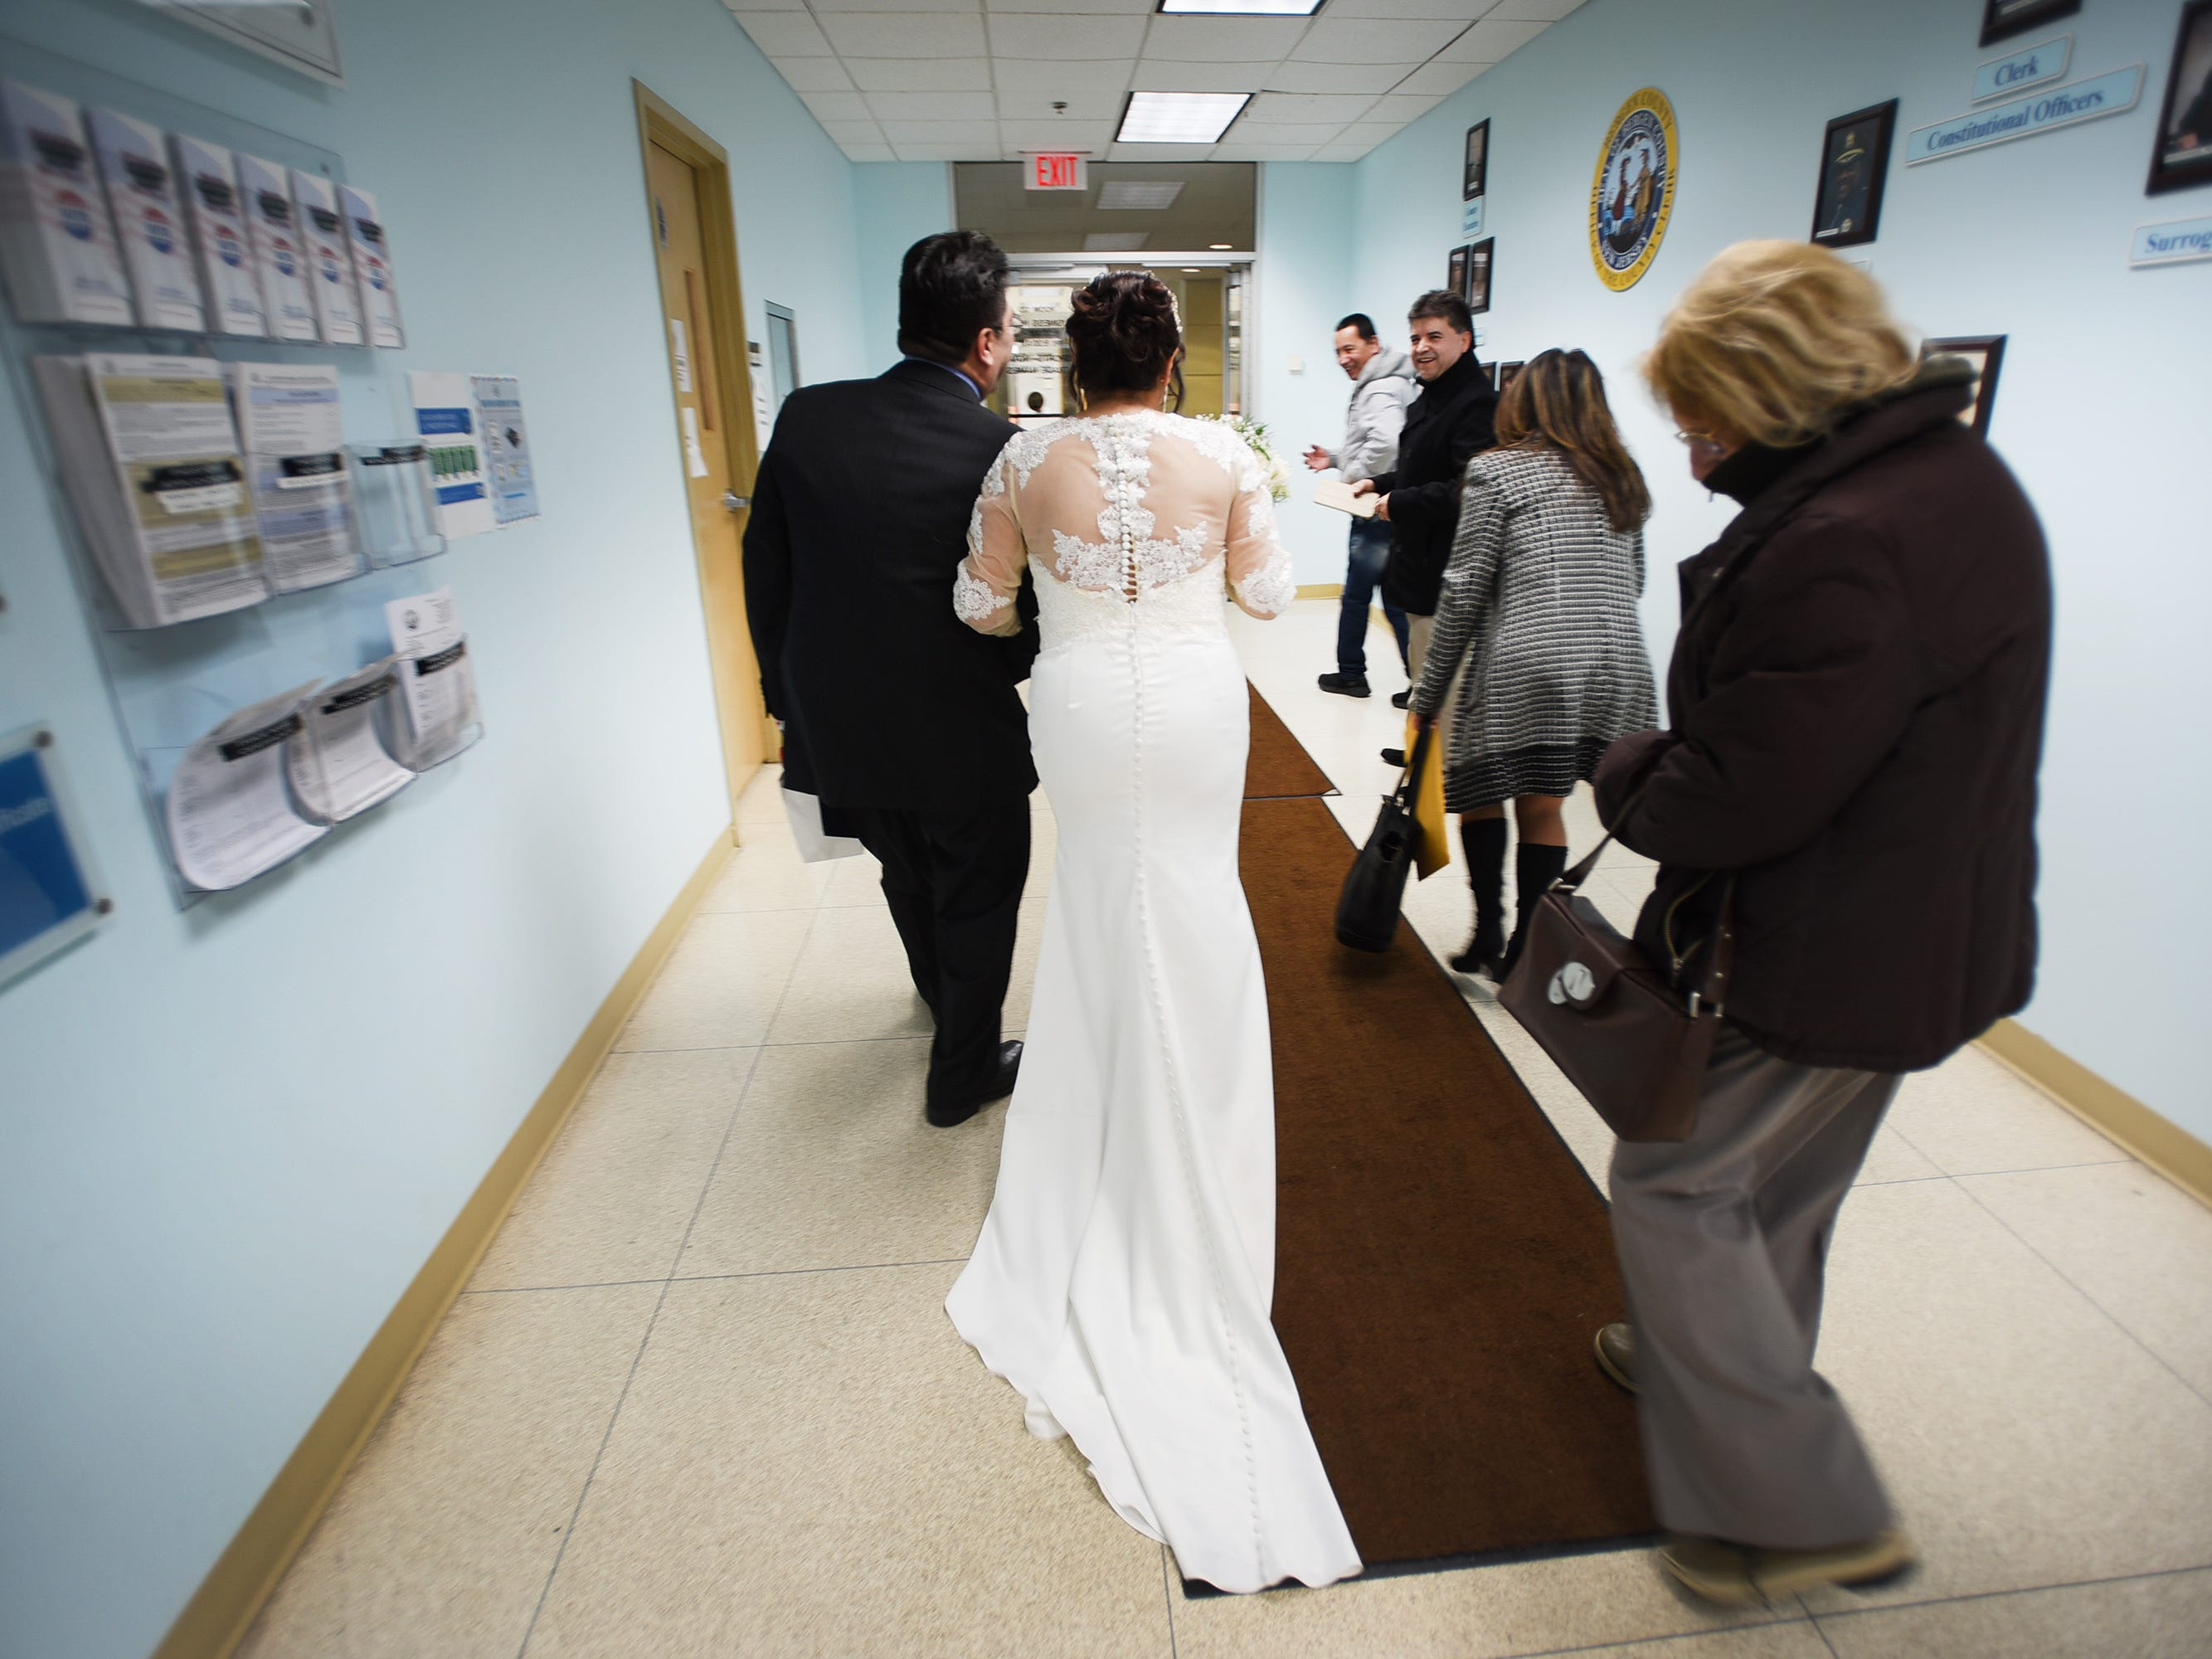 Gloria Gallego and Alexander Gutierrez of Englewood, hold hands as they leave from Bergen County Plaza following their wedding ceremony in Hackensack on 02/14/19.